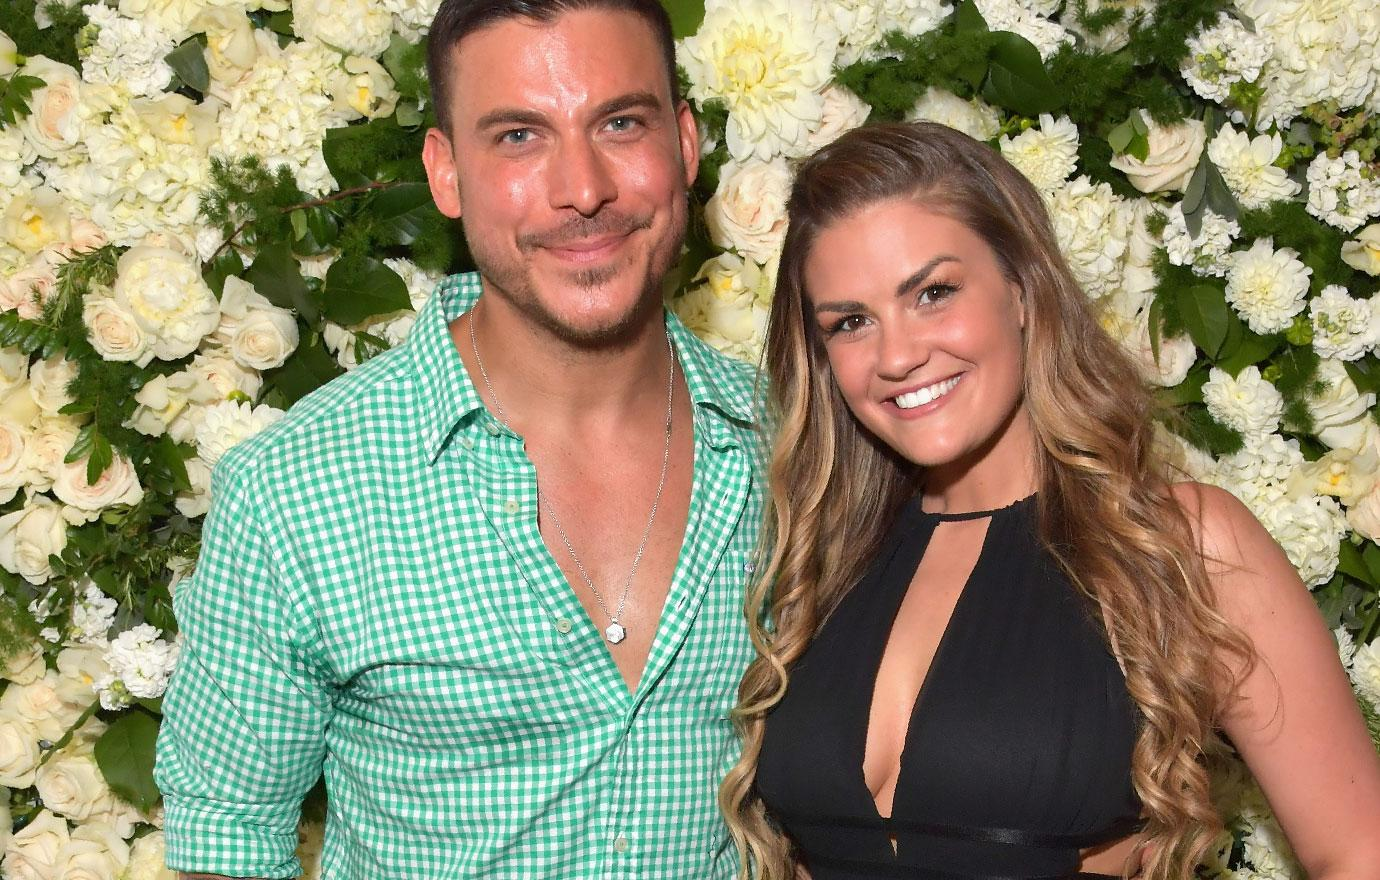 Jax Taylor And Brittany Cartwright Reveal Wedding Plans